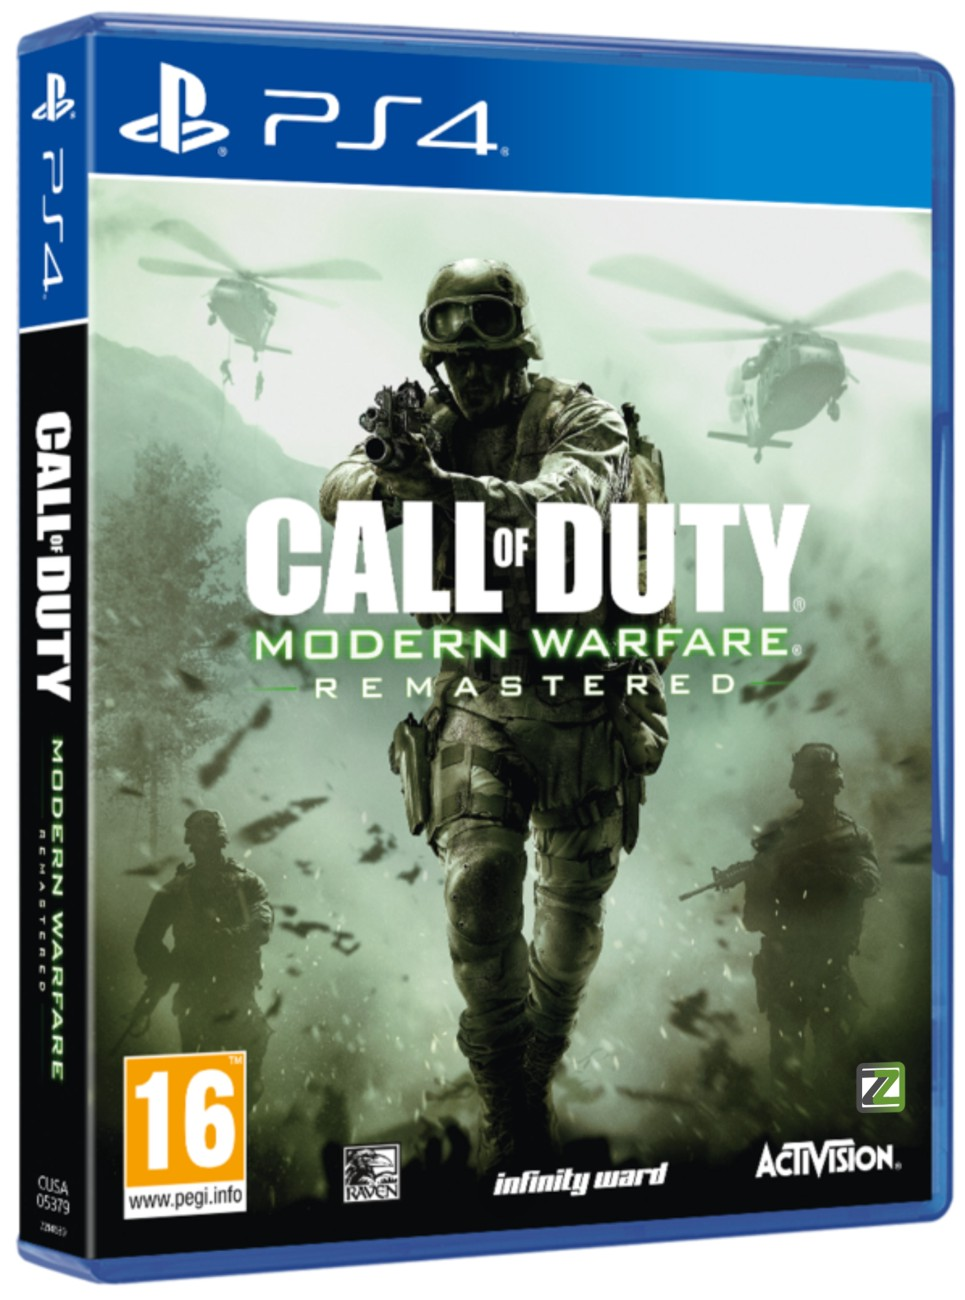 Call of Duty 4: Modern Warfare Remastered - PS4